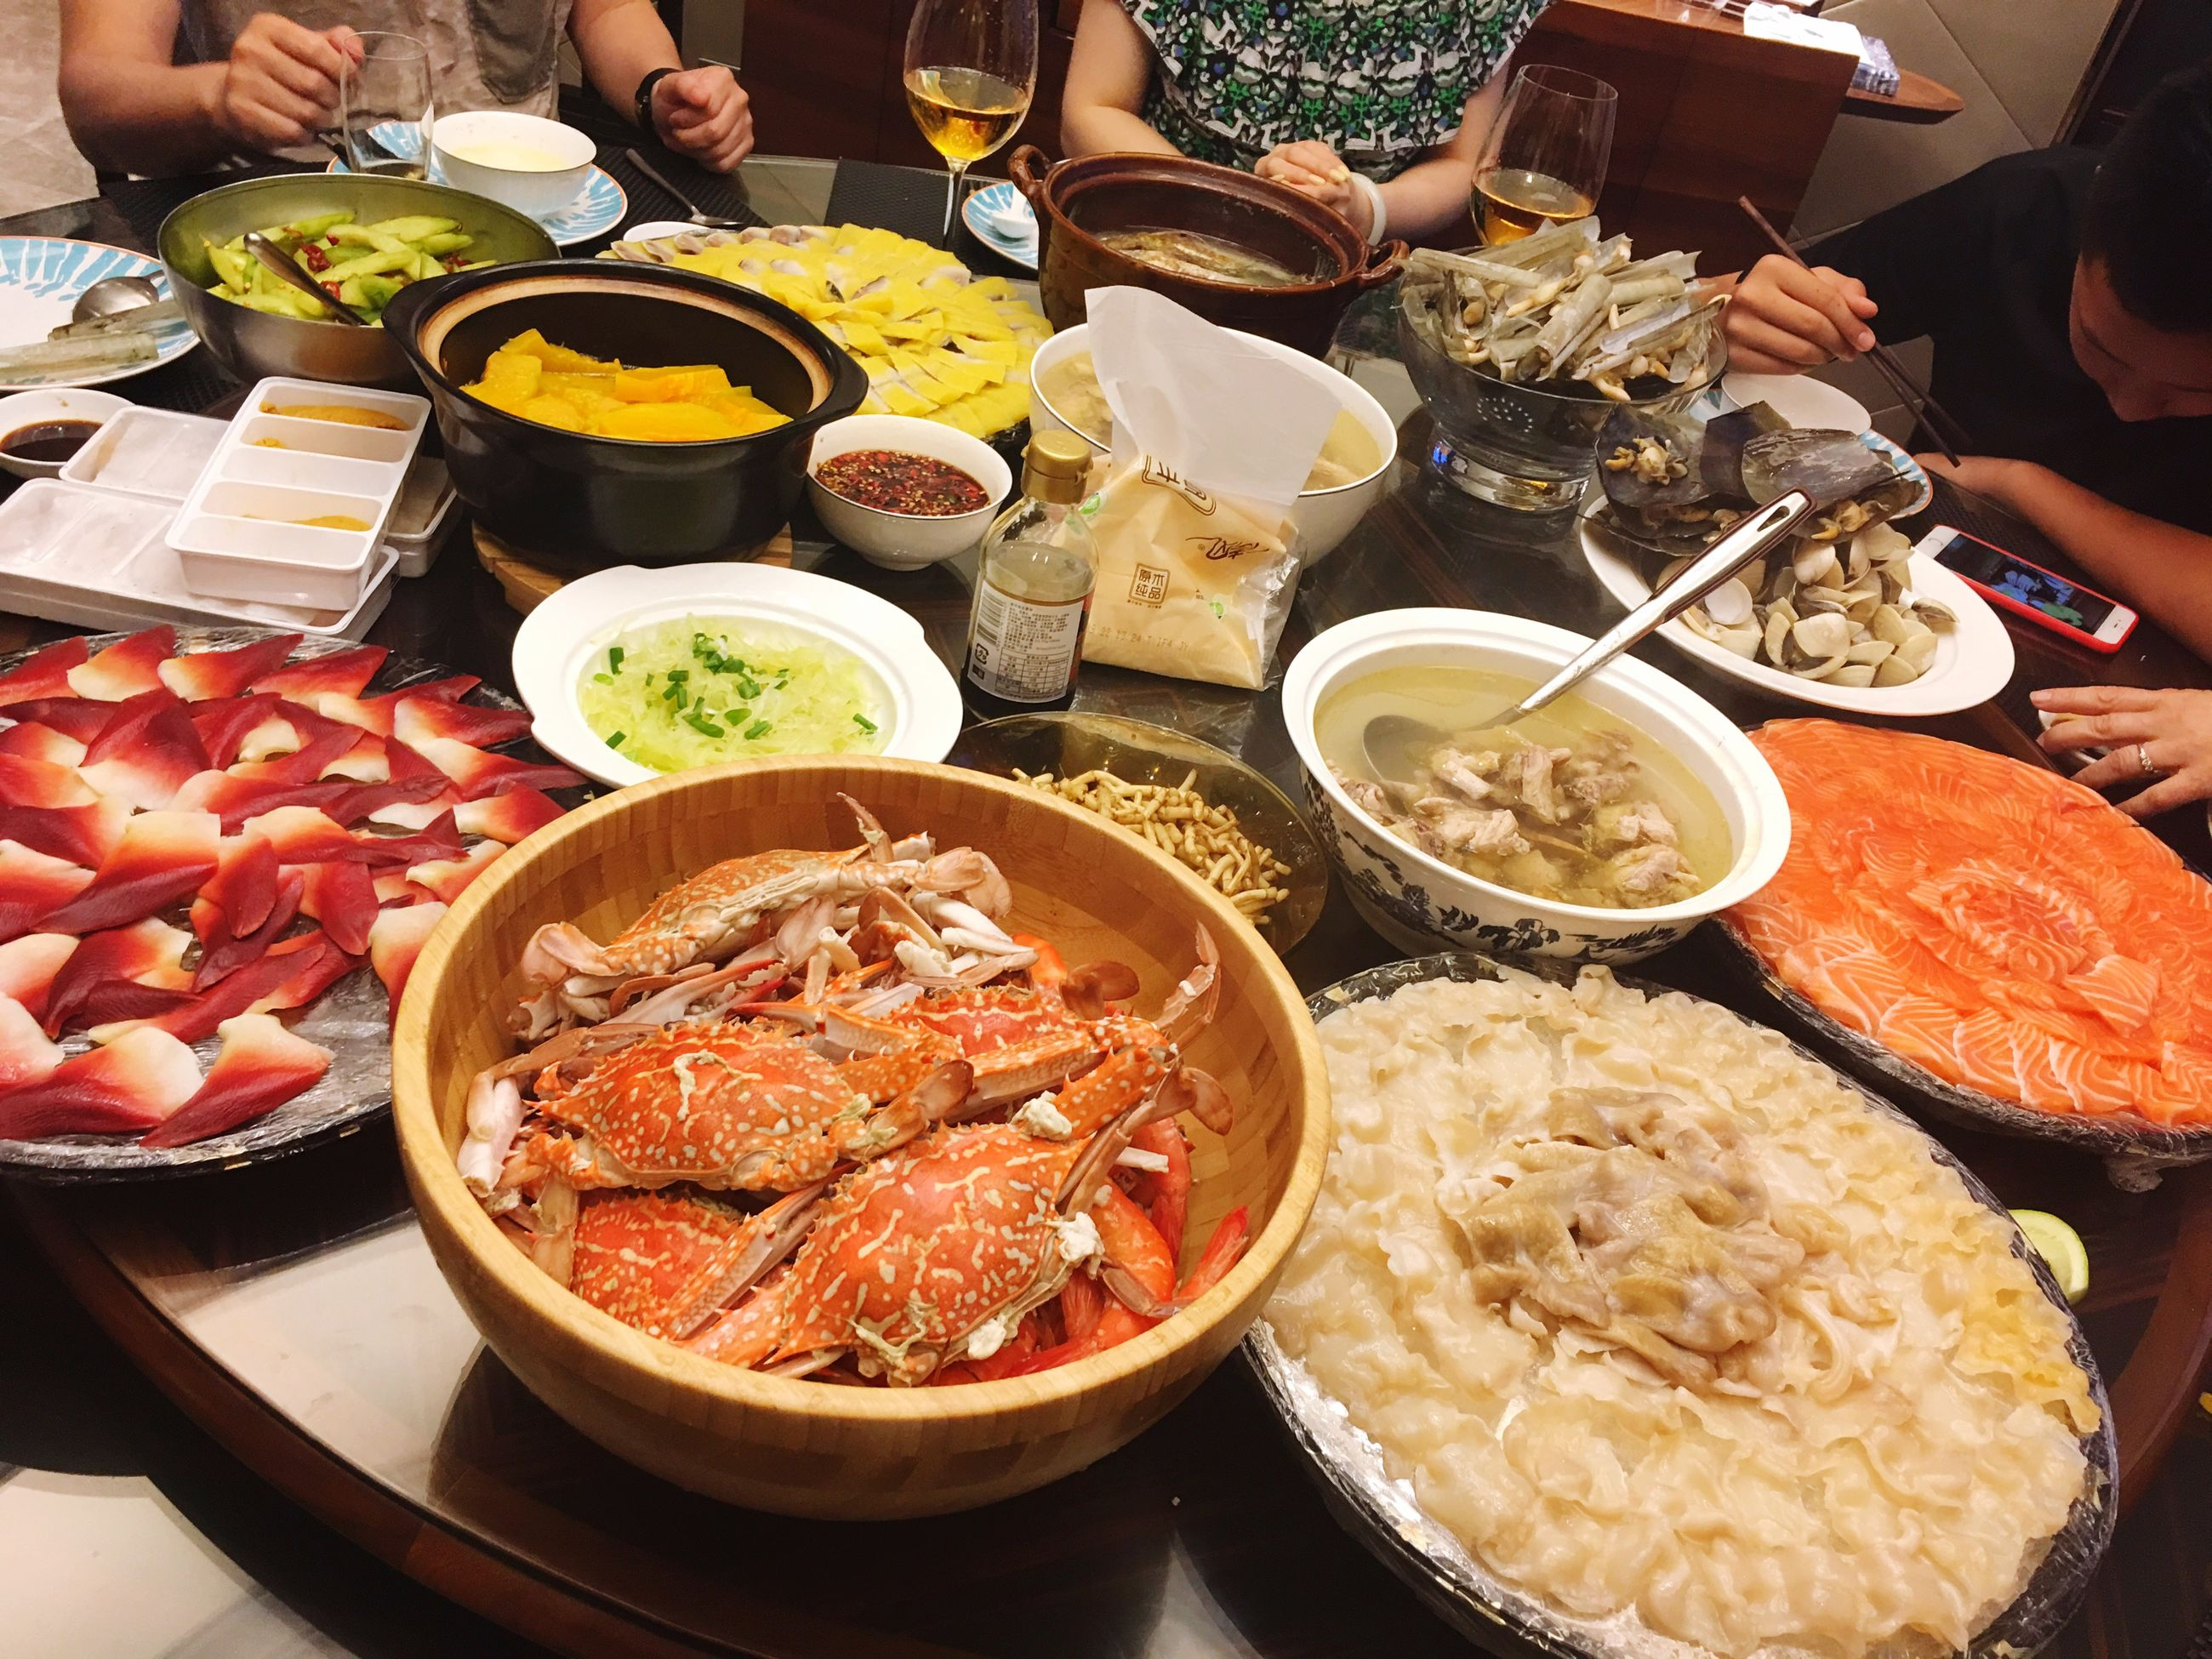 food and drink, food, plate, meat, freshness, serving size, healthy eating, ready-to-eat, meal, table, bowl, seafood, high angle view, soup, indoors, chopsticks, variation, real people, cooked, korean food, men, eating, human hand, one person, close-up, day, people